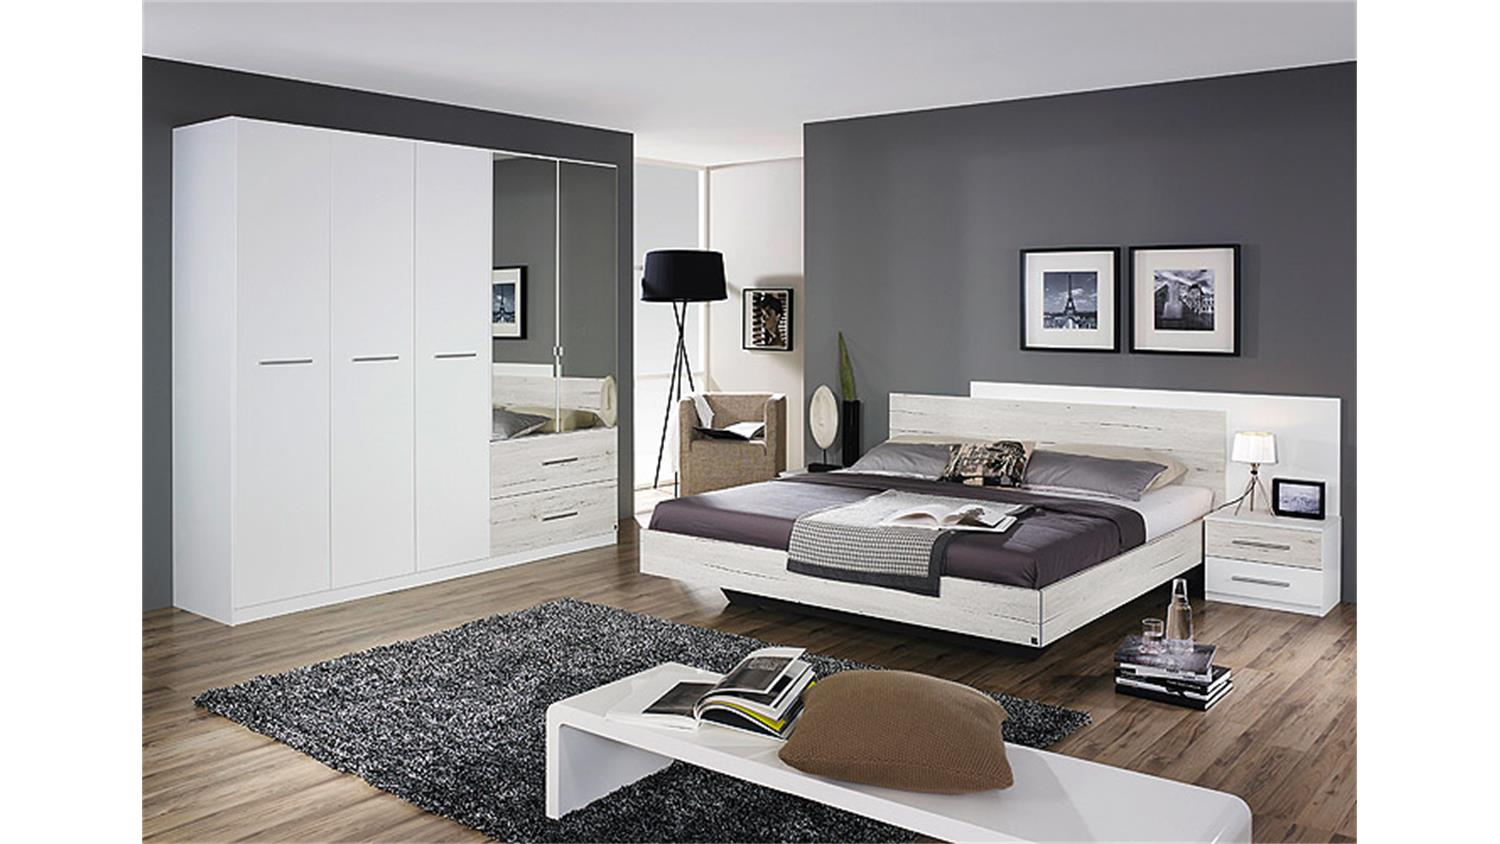 wohnzimmer ideen braun. Black Bedroom Furniture Sets. Home Design Ideas